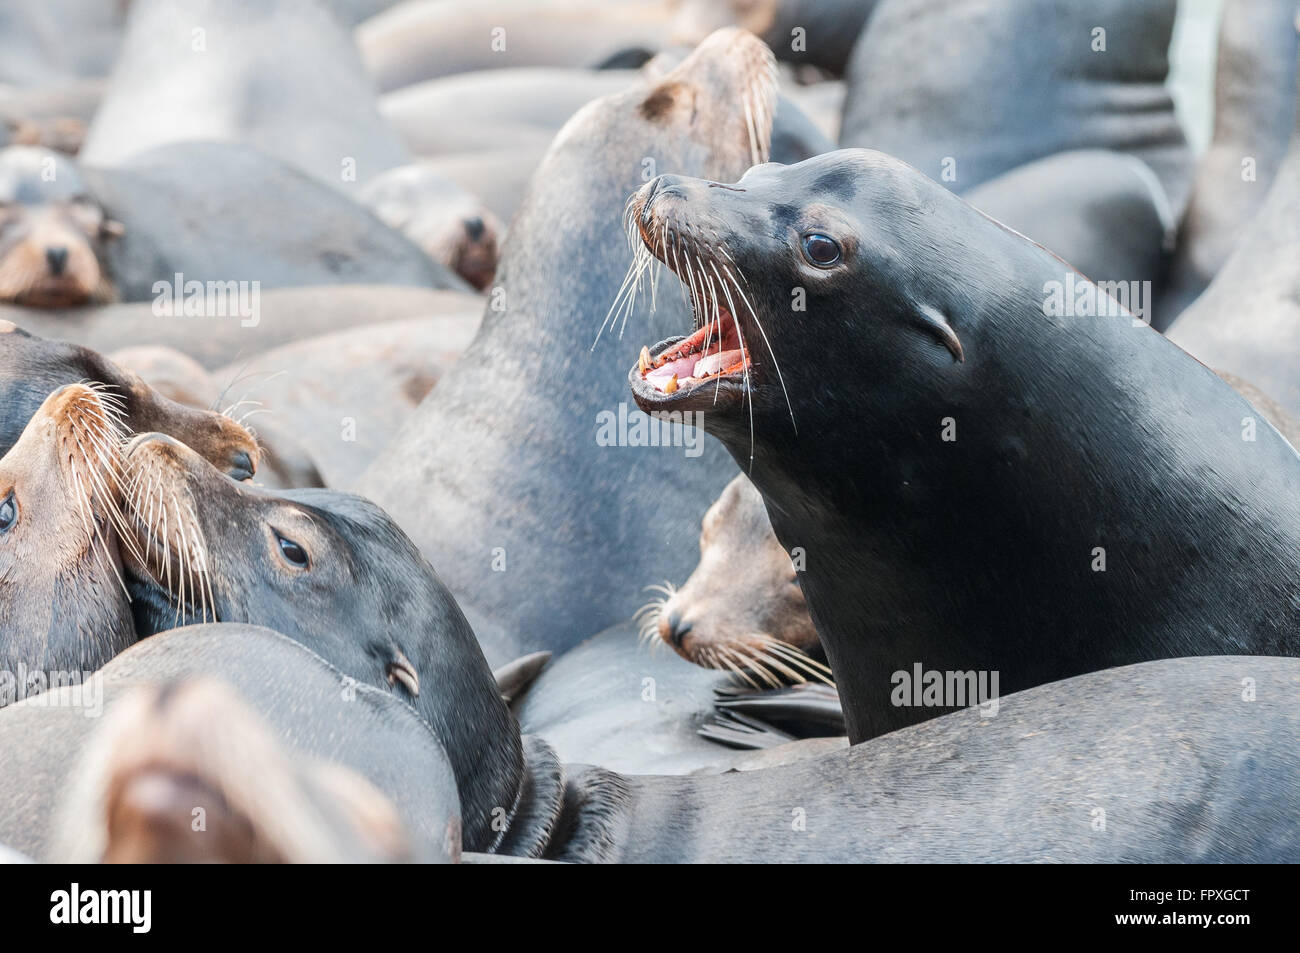 A male California Sea Lion (Zalophus californianus) howls while surrounded by many other individuals. Rainier, Oregon, - Stock Image